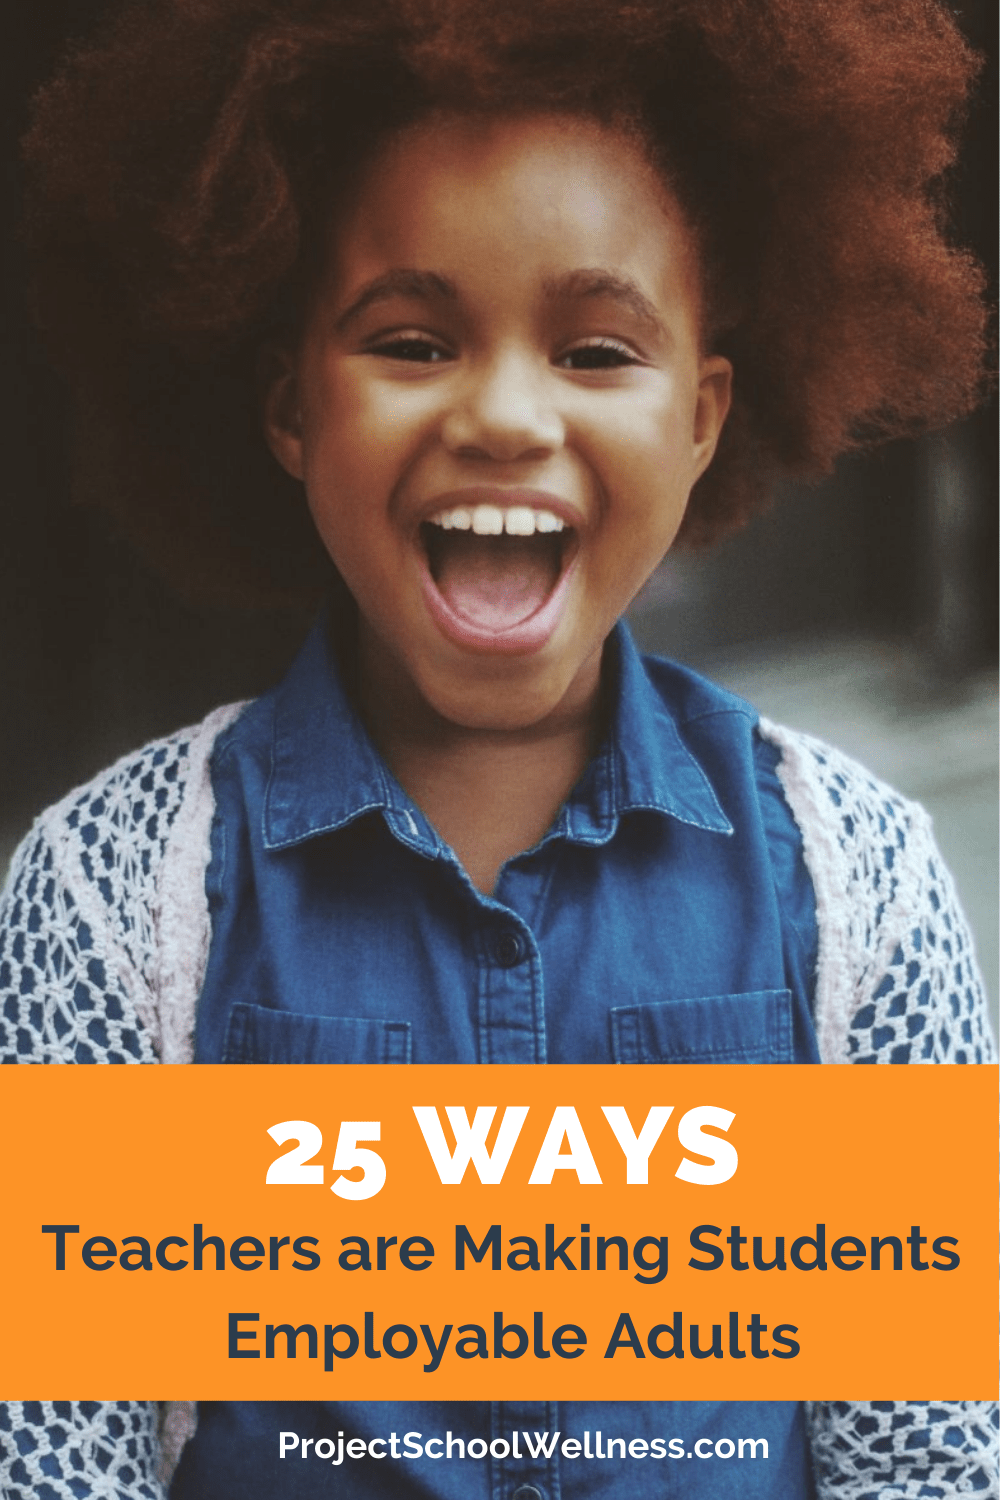 25 Ways Teachers Are Making Students Employable Adults - a project school wellness blog